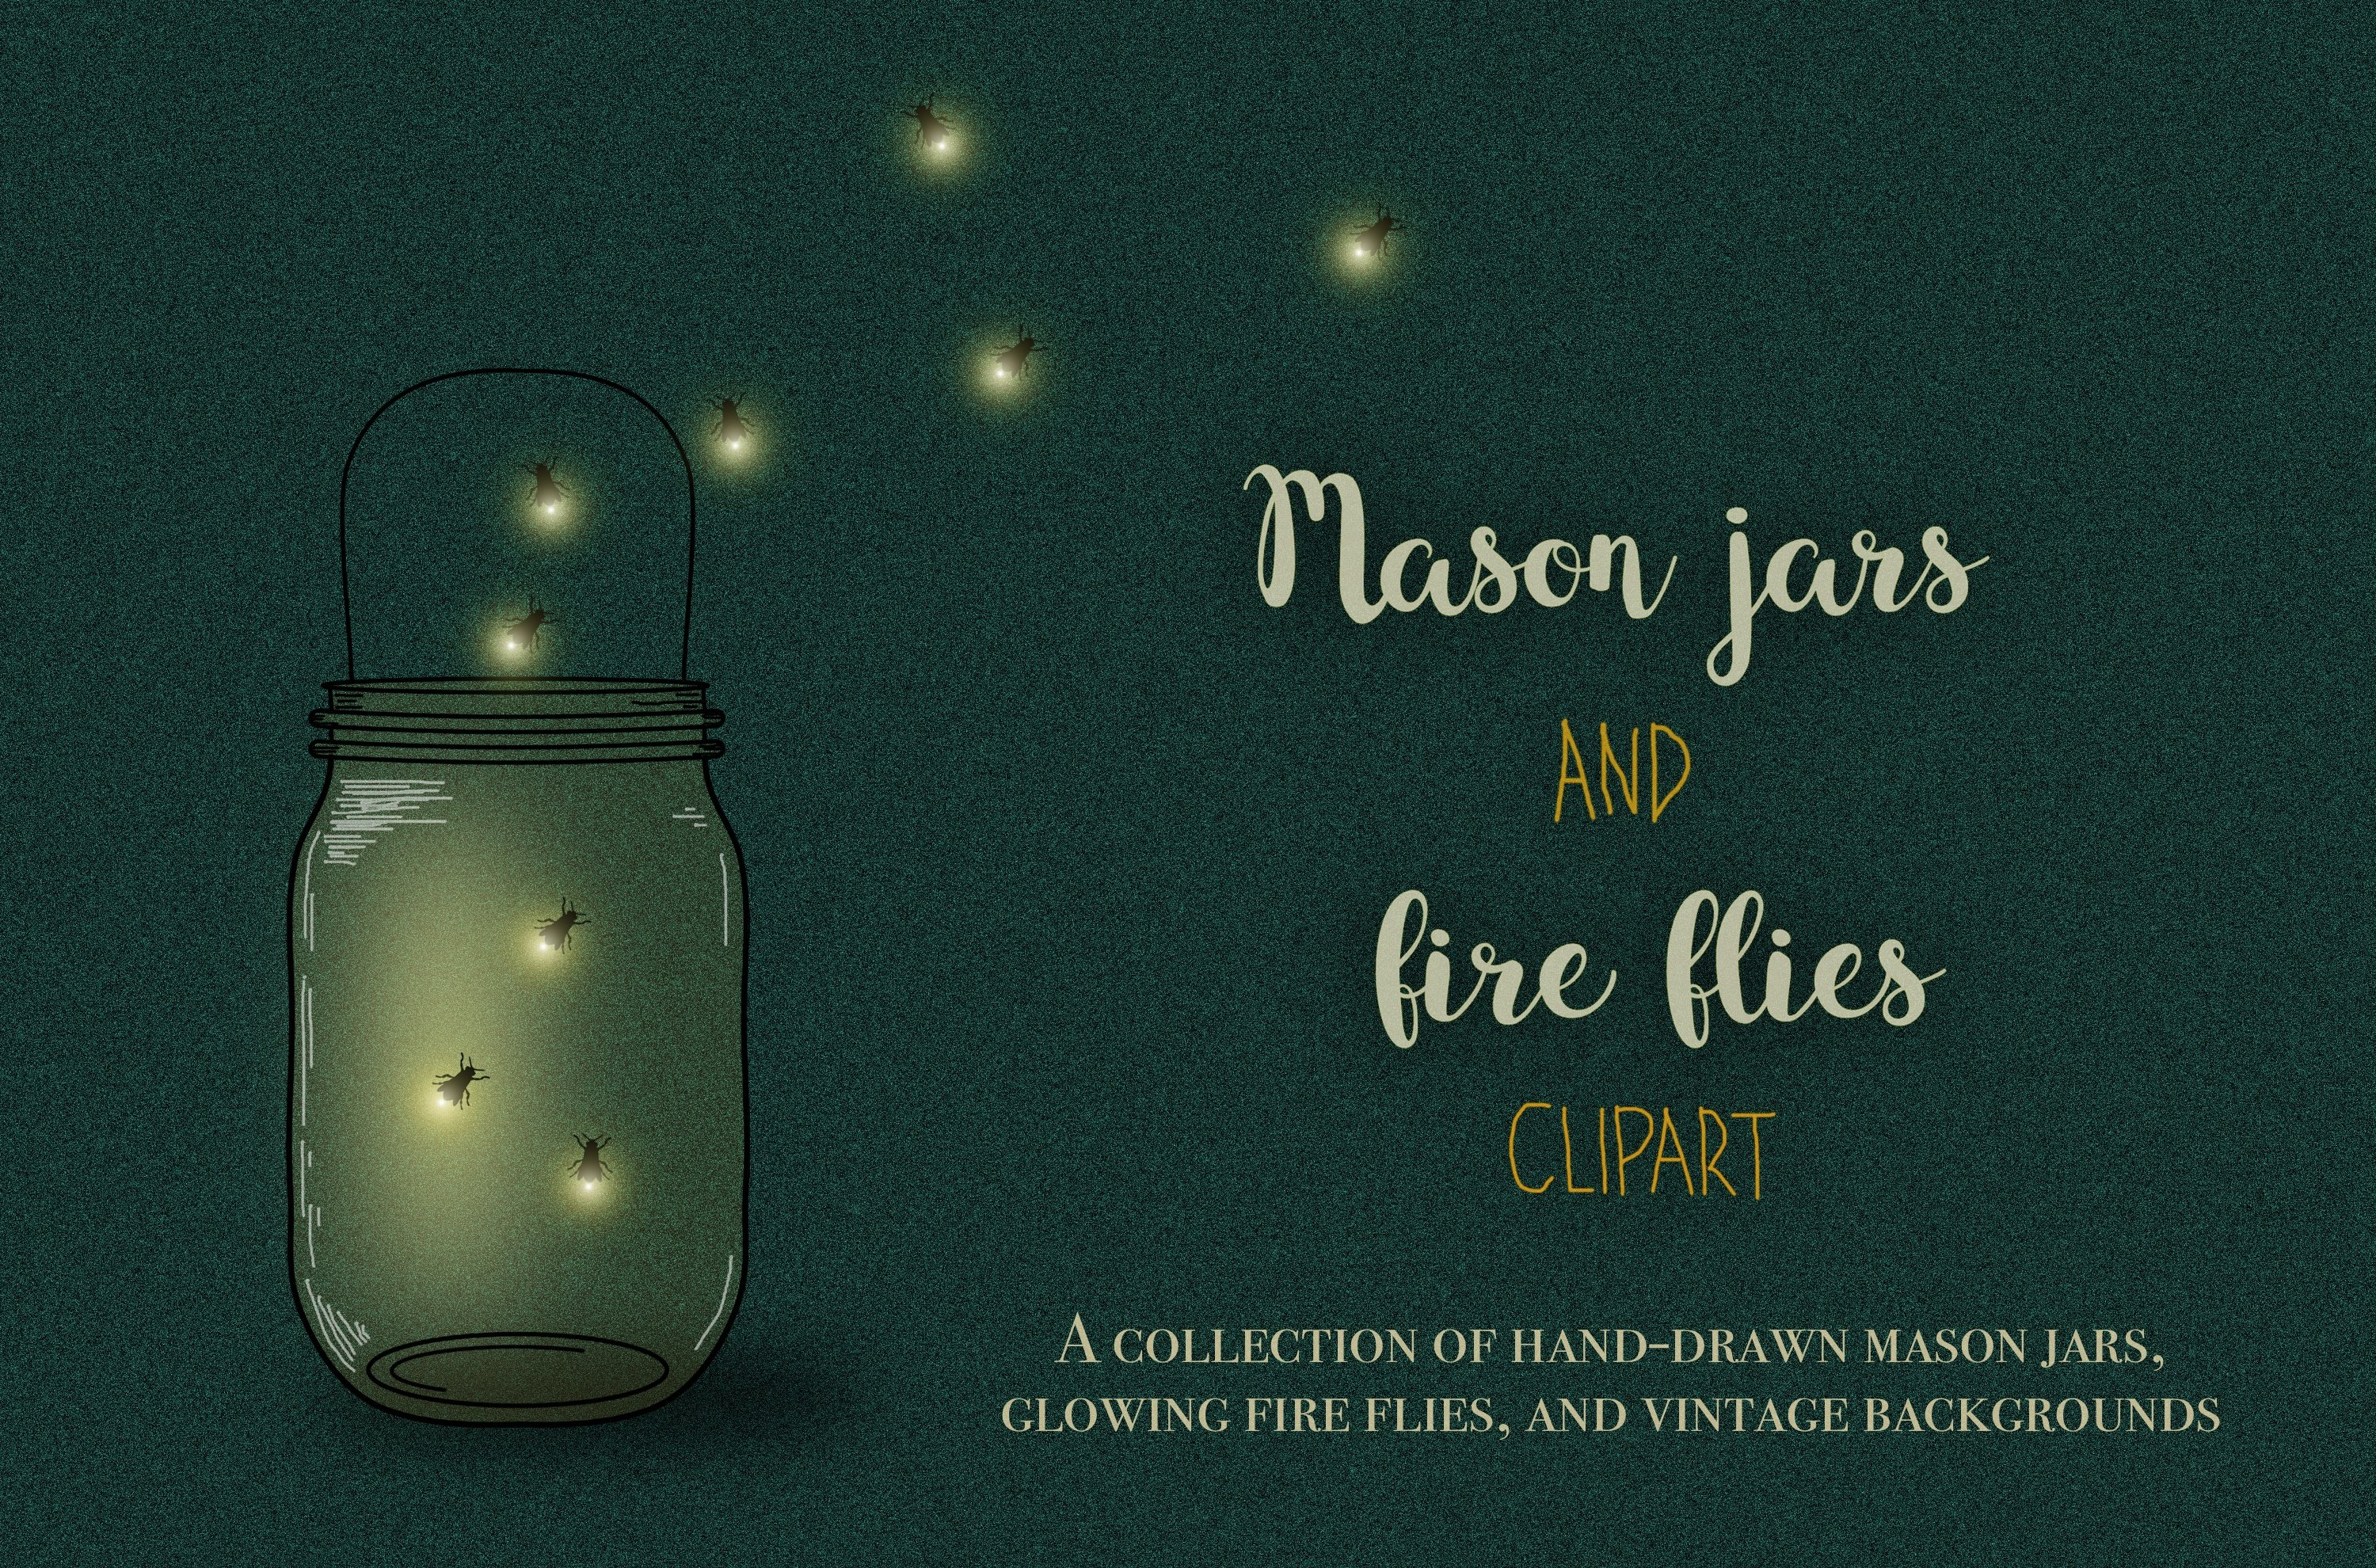 Firefly clipart vintage. Mason jars and fireflies